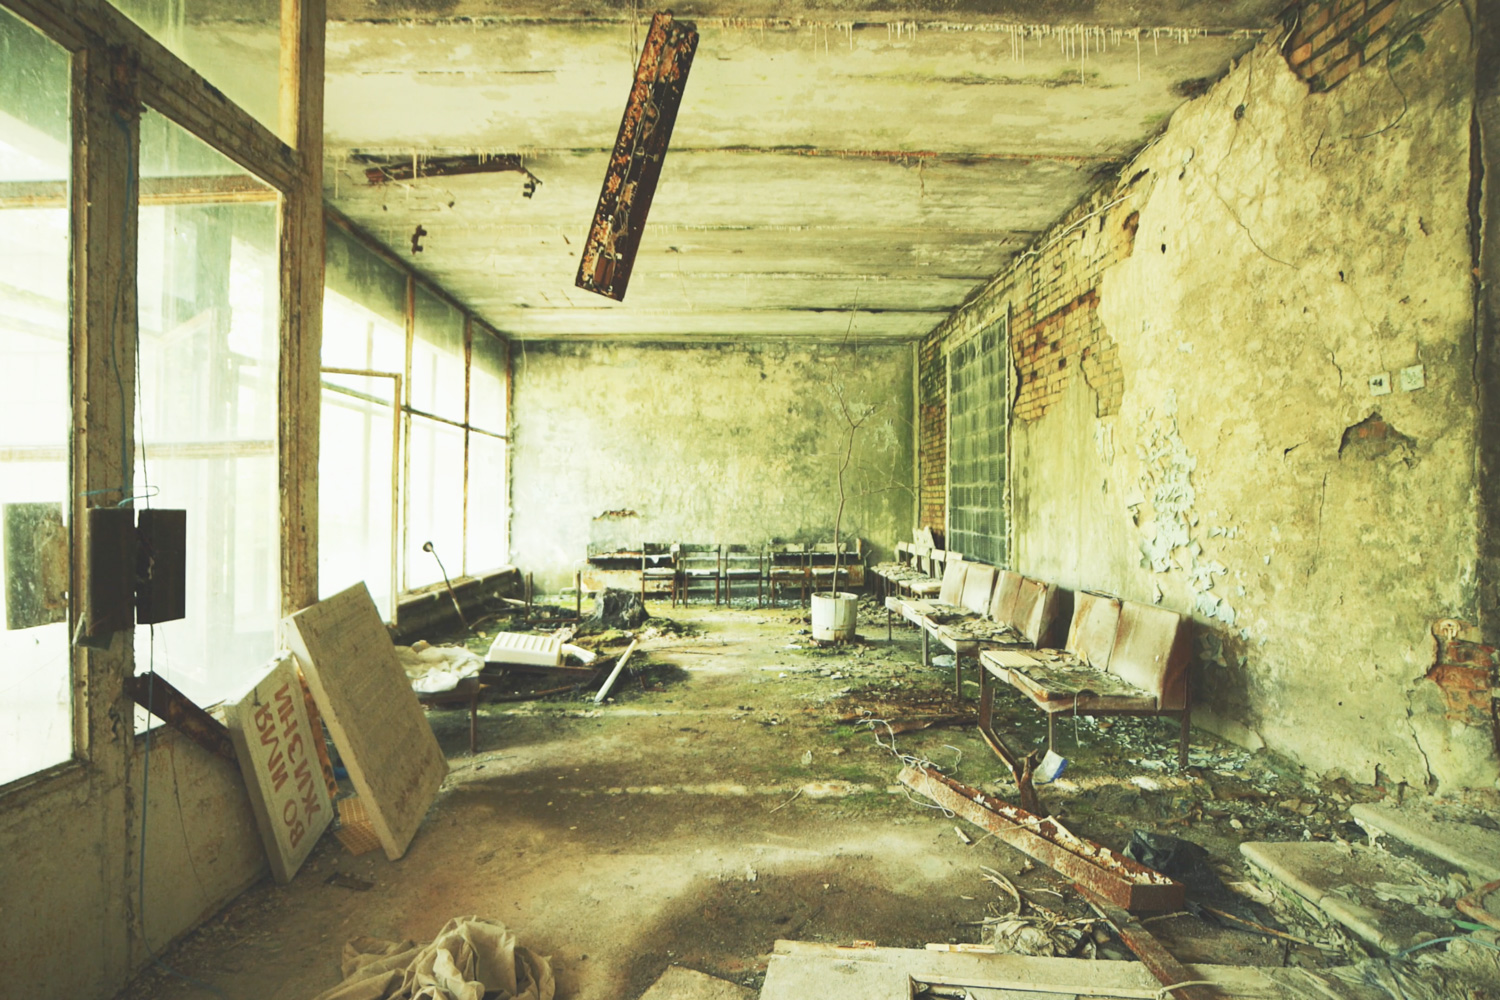 Step Inside Chernobyl's Haunting Ruins 30 Years After Its Catastrophic Nuclear Accident